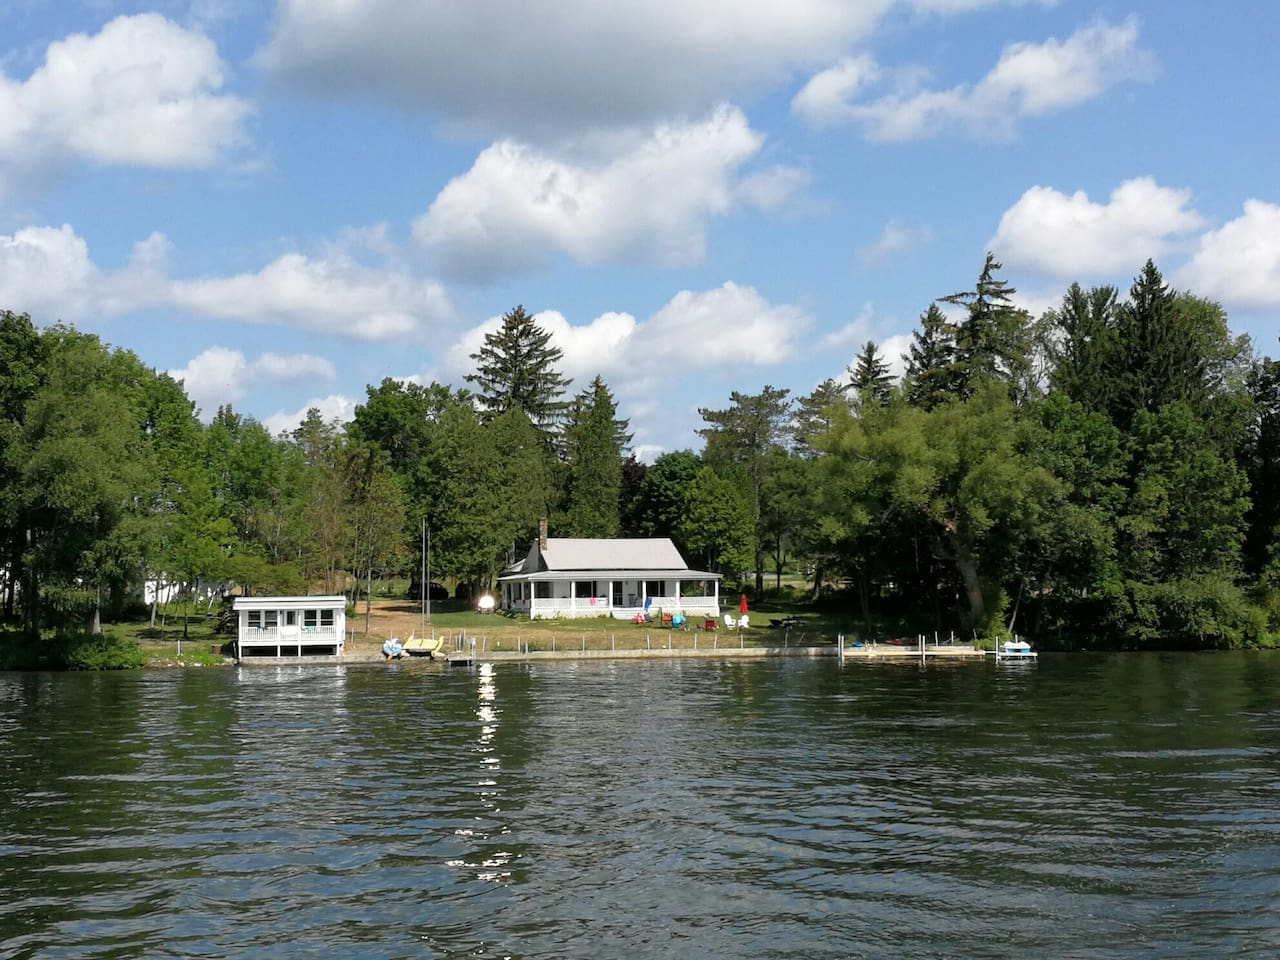 Silverlaken Lodge & Boat House as viewed from the lake. The WICKER ROOM is a private bedroom inside the Silverlaken Lodge with shared bathrooms and access to the wrap-around-deck, docks, BBQ, Fire pit, boats and other facilities at the Silverlaken Glampground.